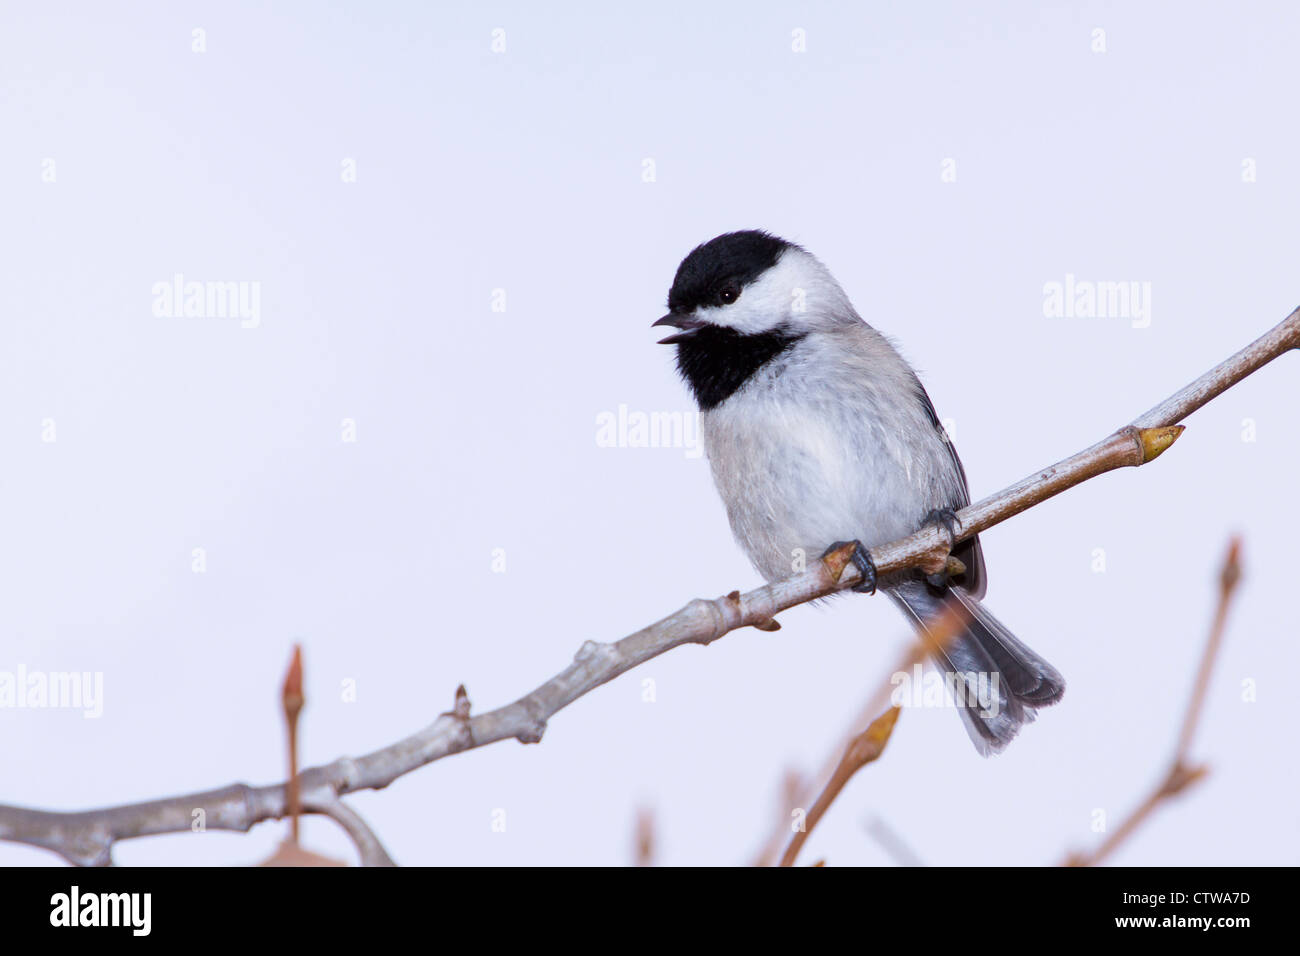 Carolina Chickadee, Poecile carolinensis, at Block Creek Natural Area - Stock Image